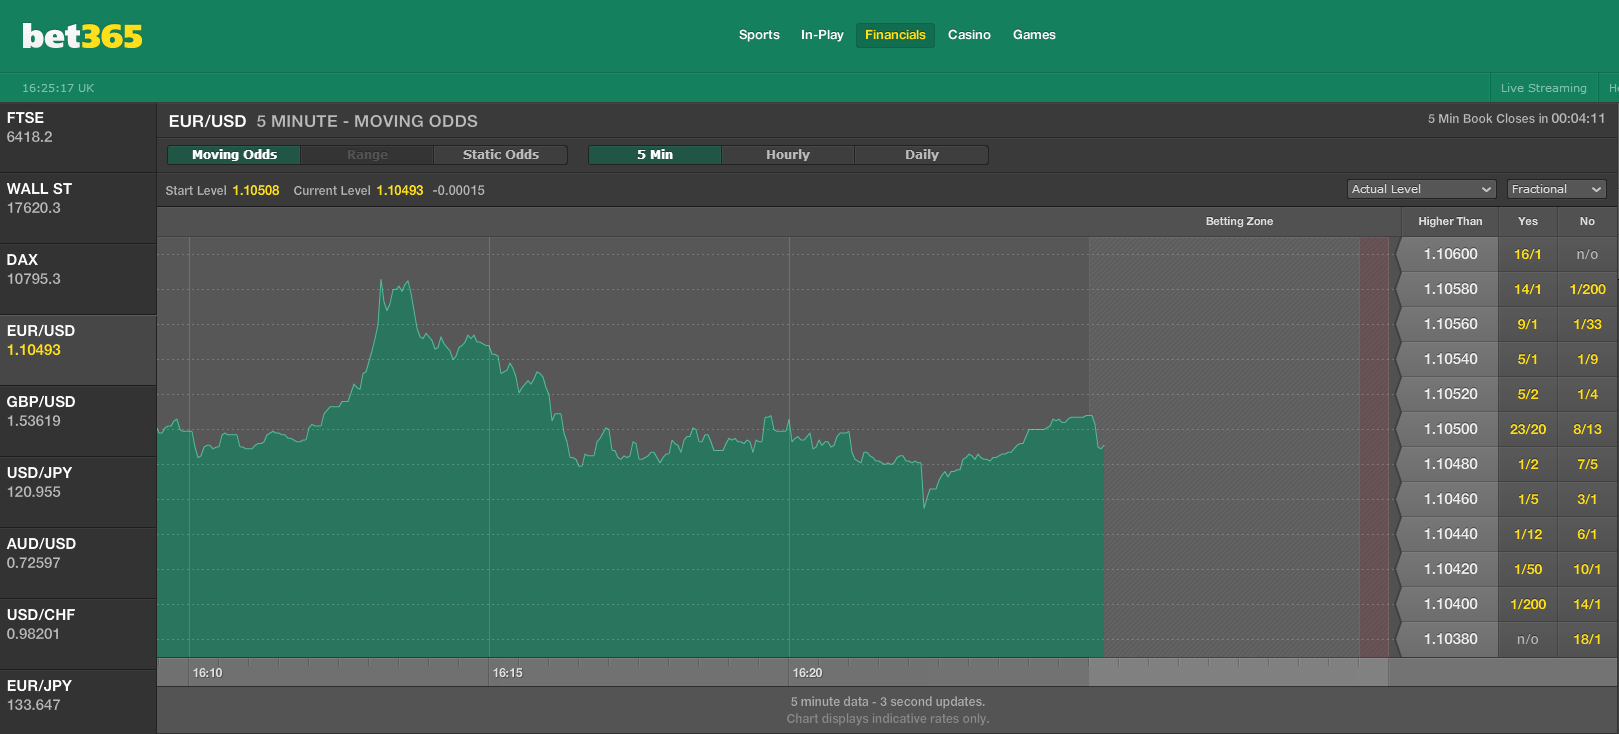 bet365financials